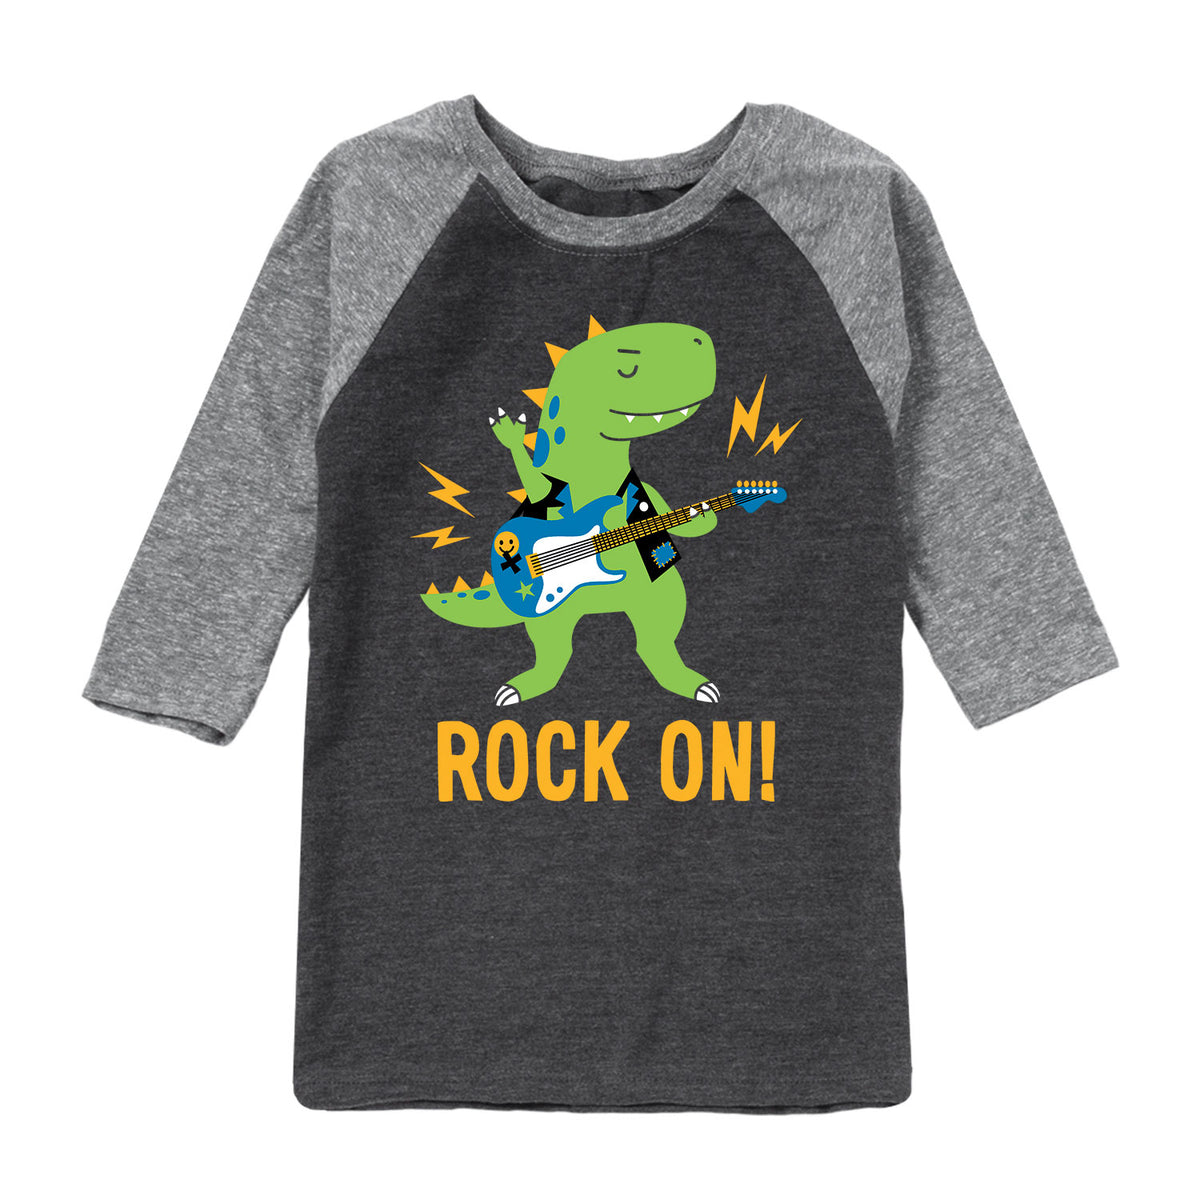 Rock On Dinosaur - Toddler Raglan